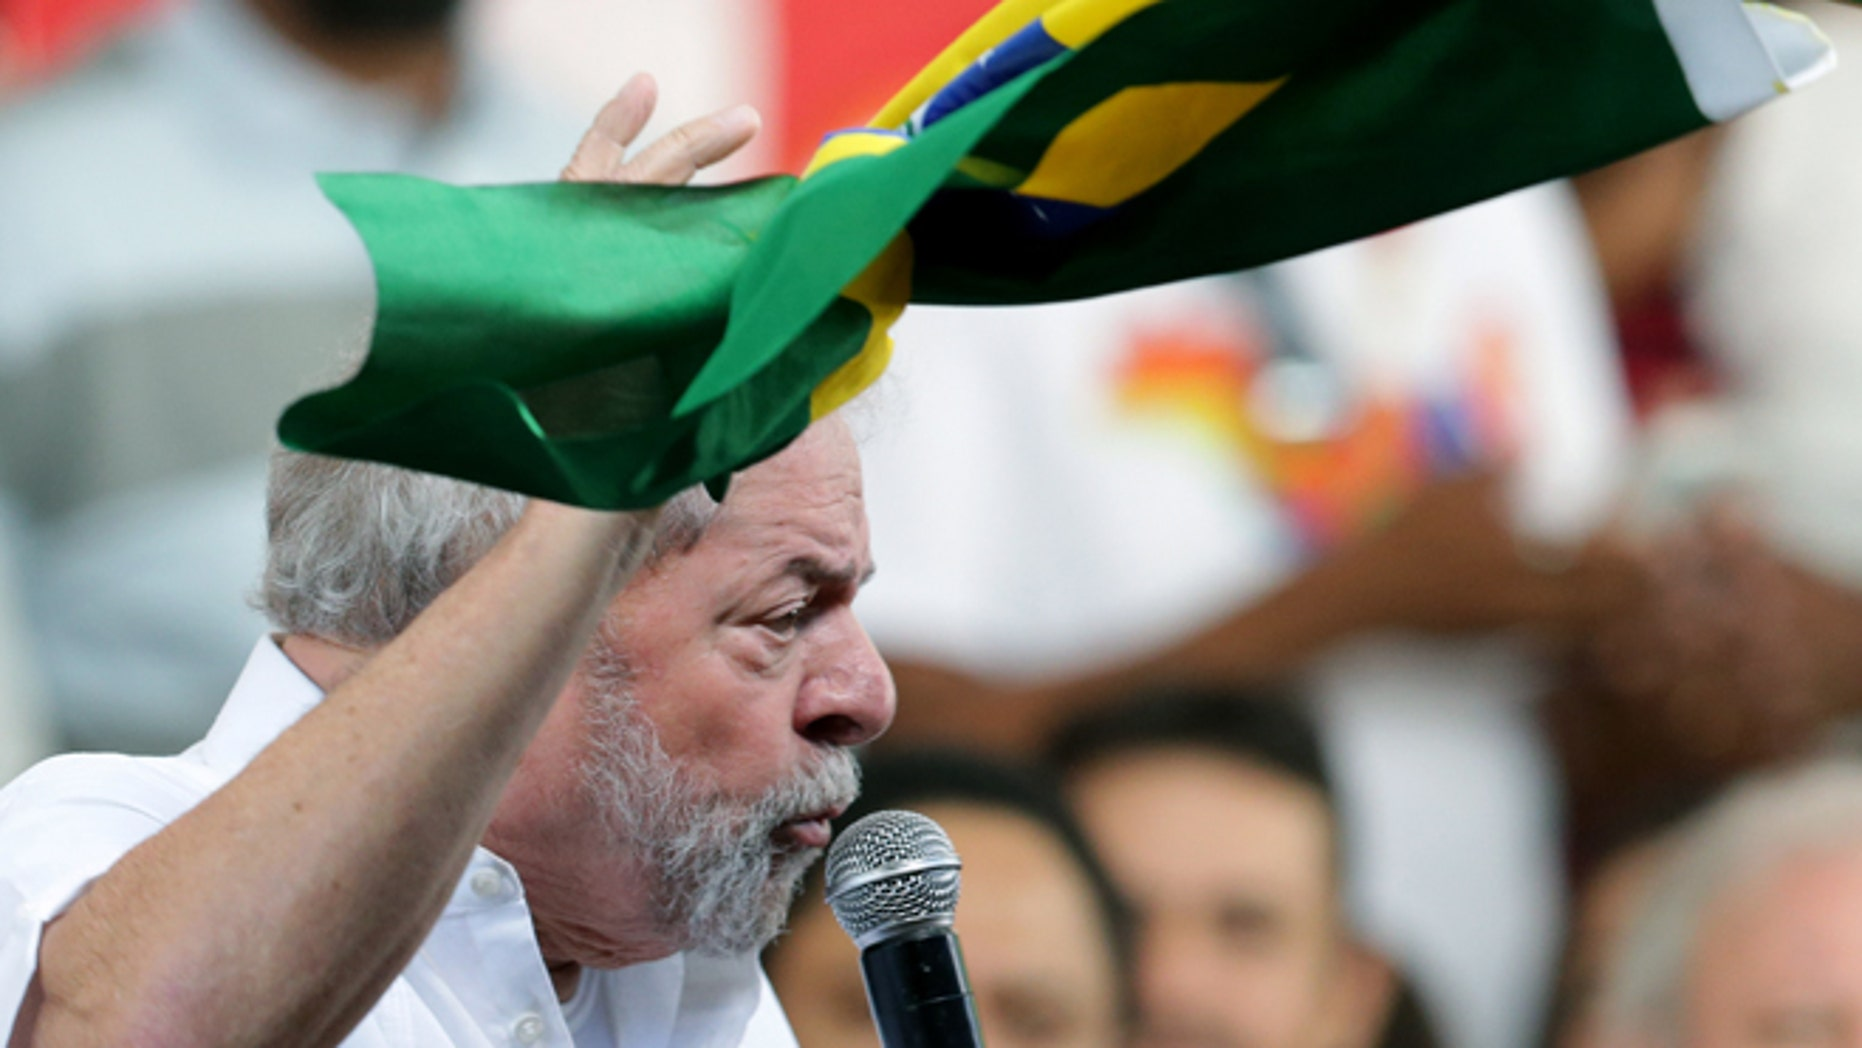 Brazil's former President Luiz Inacio Lula da Silva, holds a Brazilian flag, while speaking during a rally of Social Movements for Democracy, in a camp set up by supporters of President Dilma Rousseff in Brasilia, Brazil, Saturday, April 16, 2016. The lower chamber of Brazil's Congress on Friday began a debate on whether to impeach Rousseff, a question that underscores deep polarization in Latin America's largest country and most powerful economy. The crucial vote is slated for Sunday. (AP Photo/Eraldo Peres)